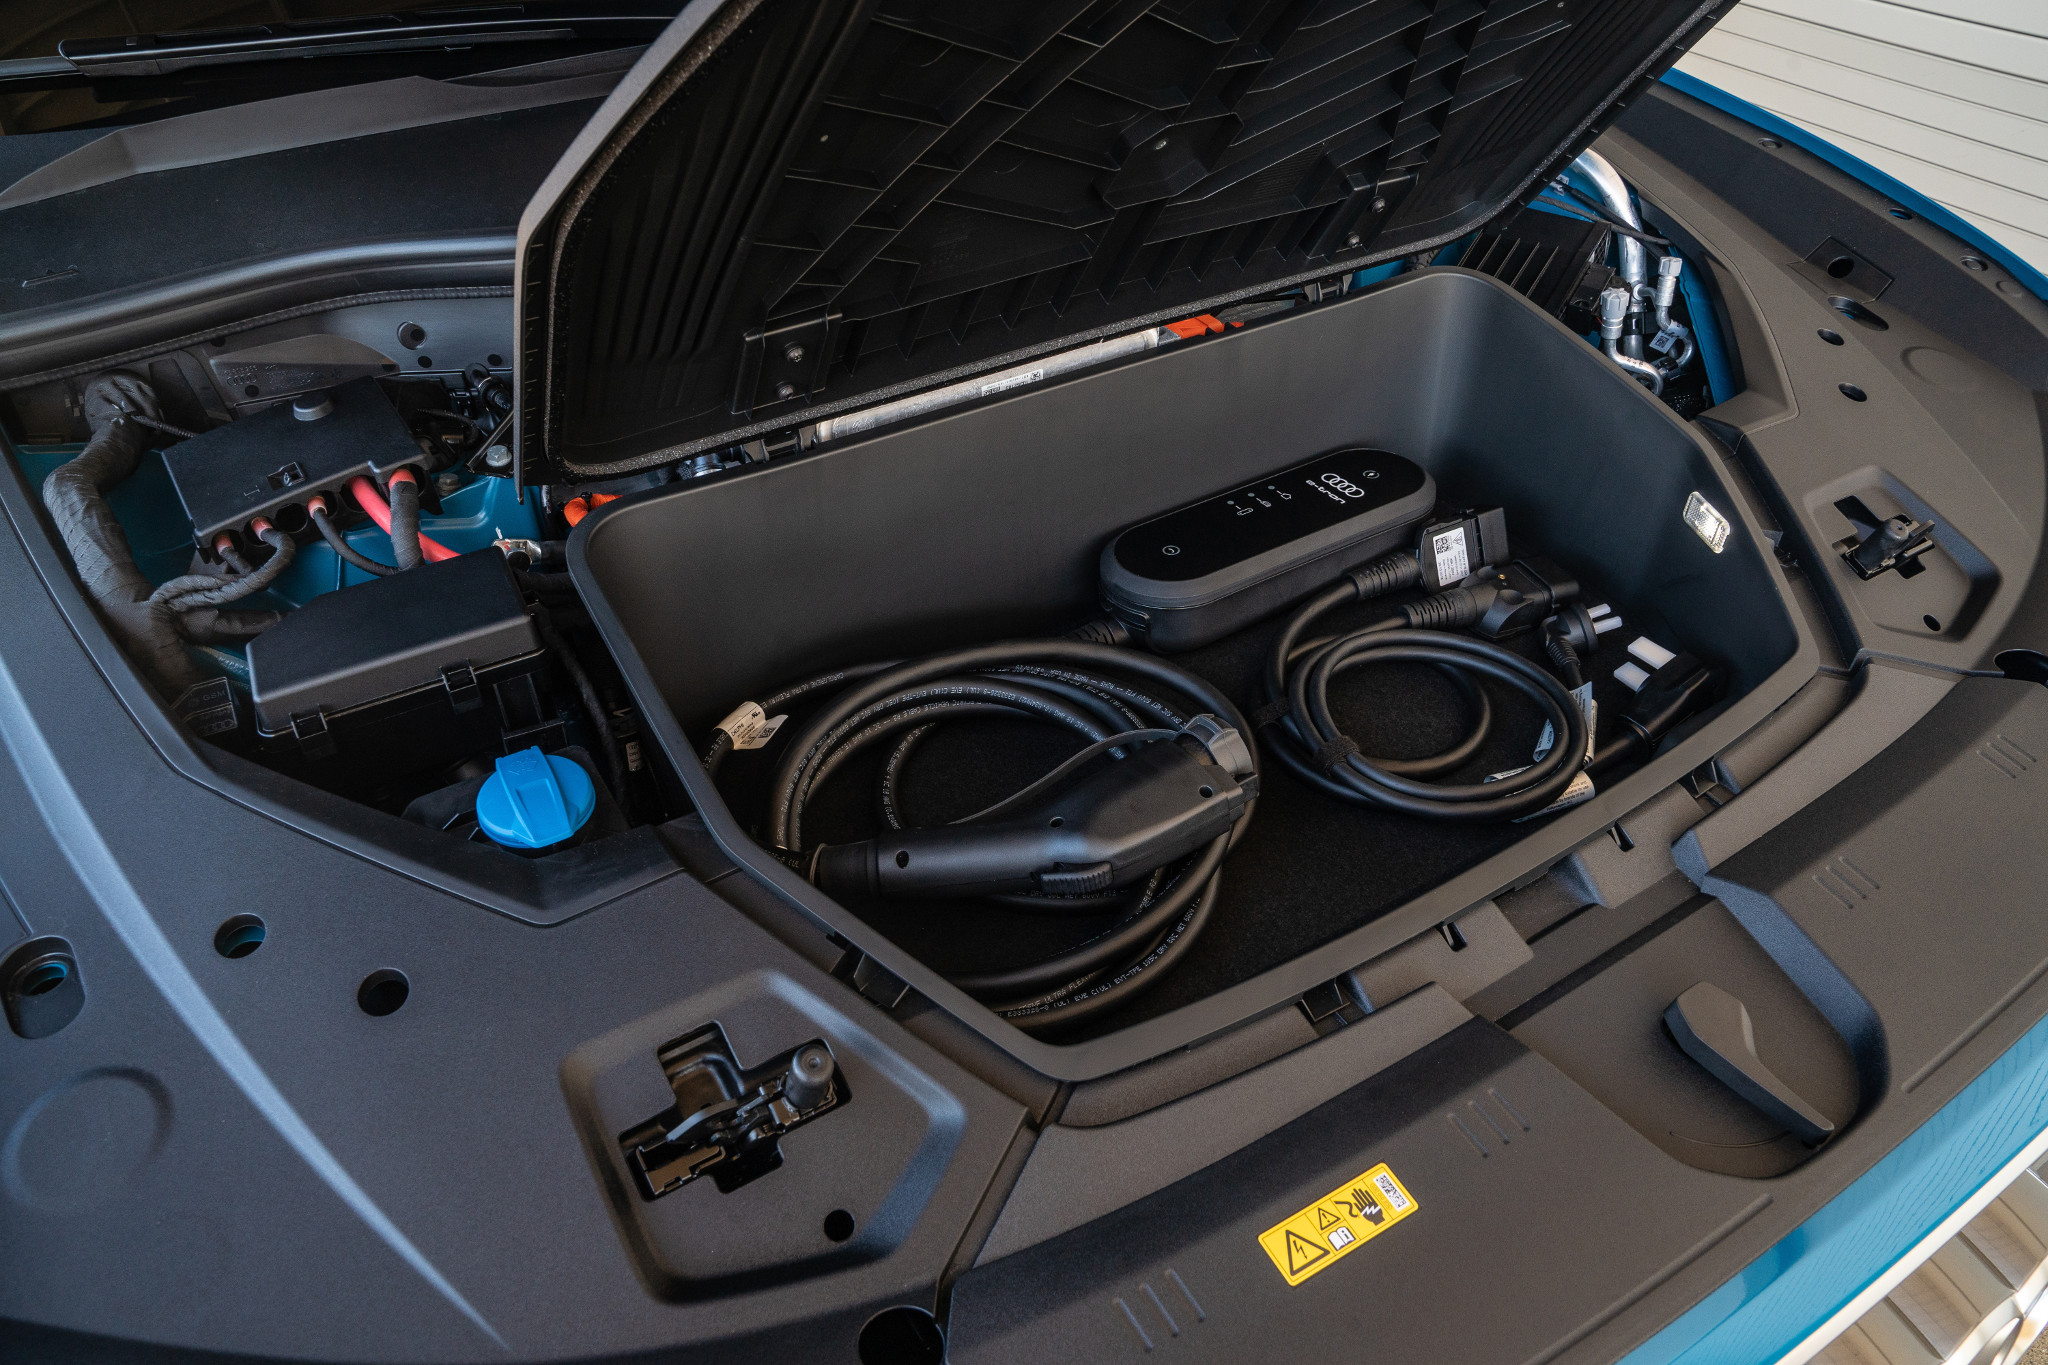 02-audi-e-tron-2019-charging-cables--engine--exterior--front.jpg